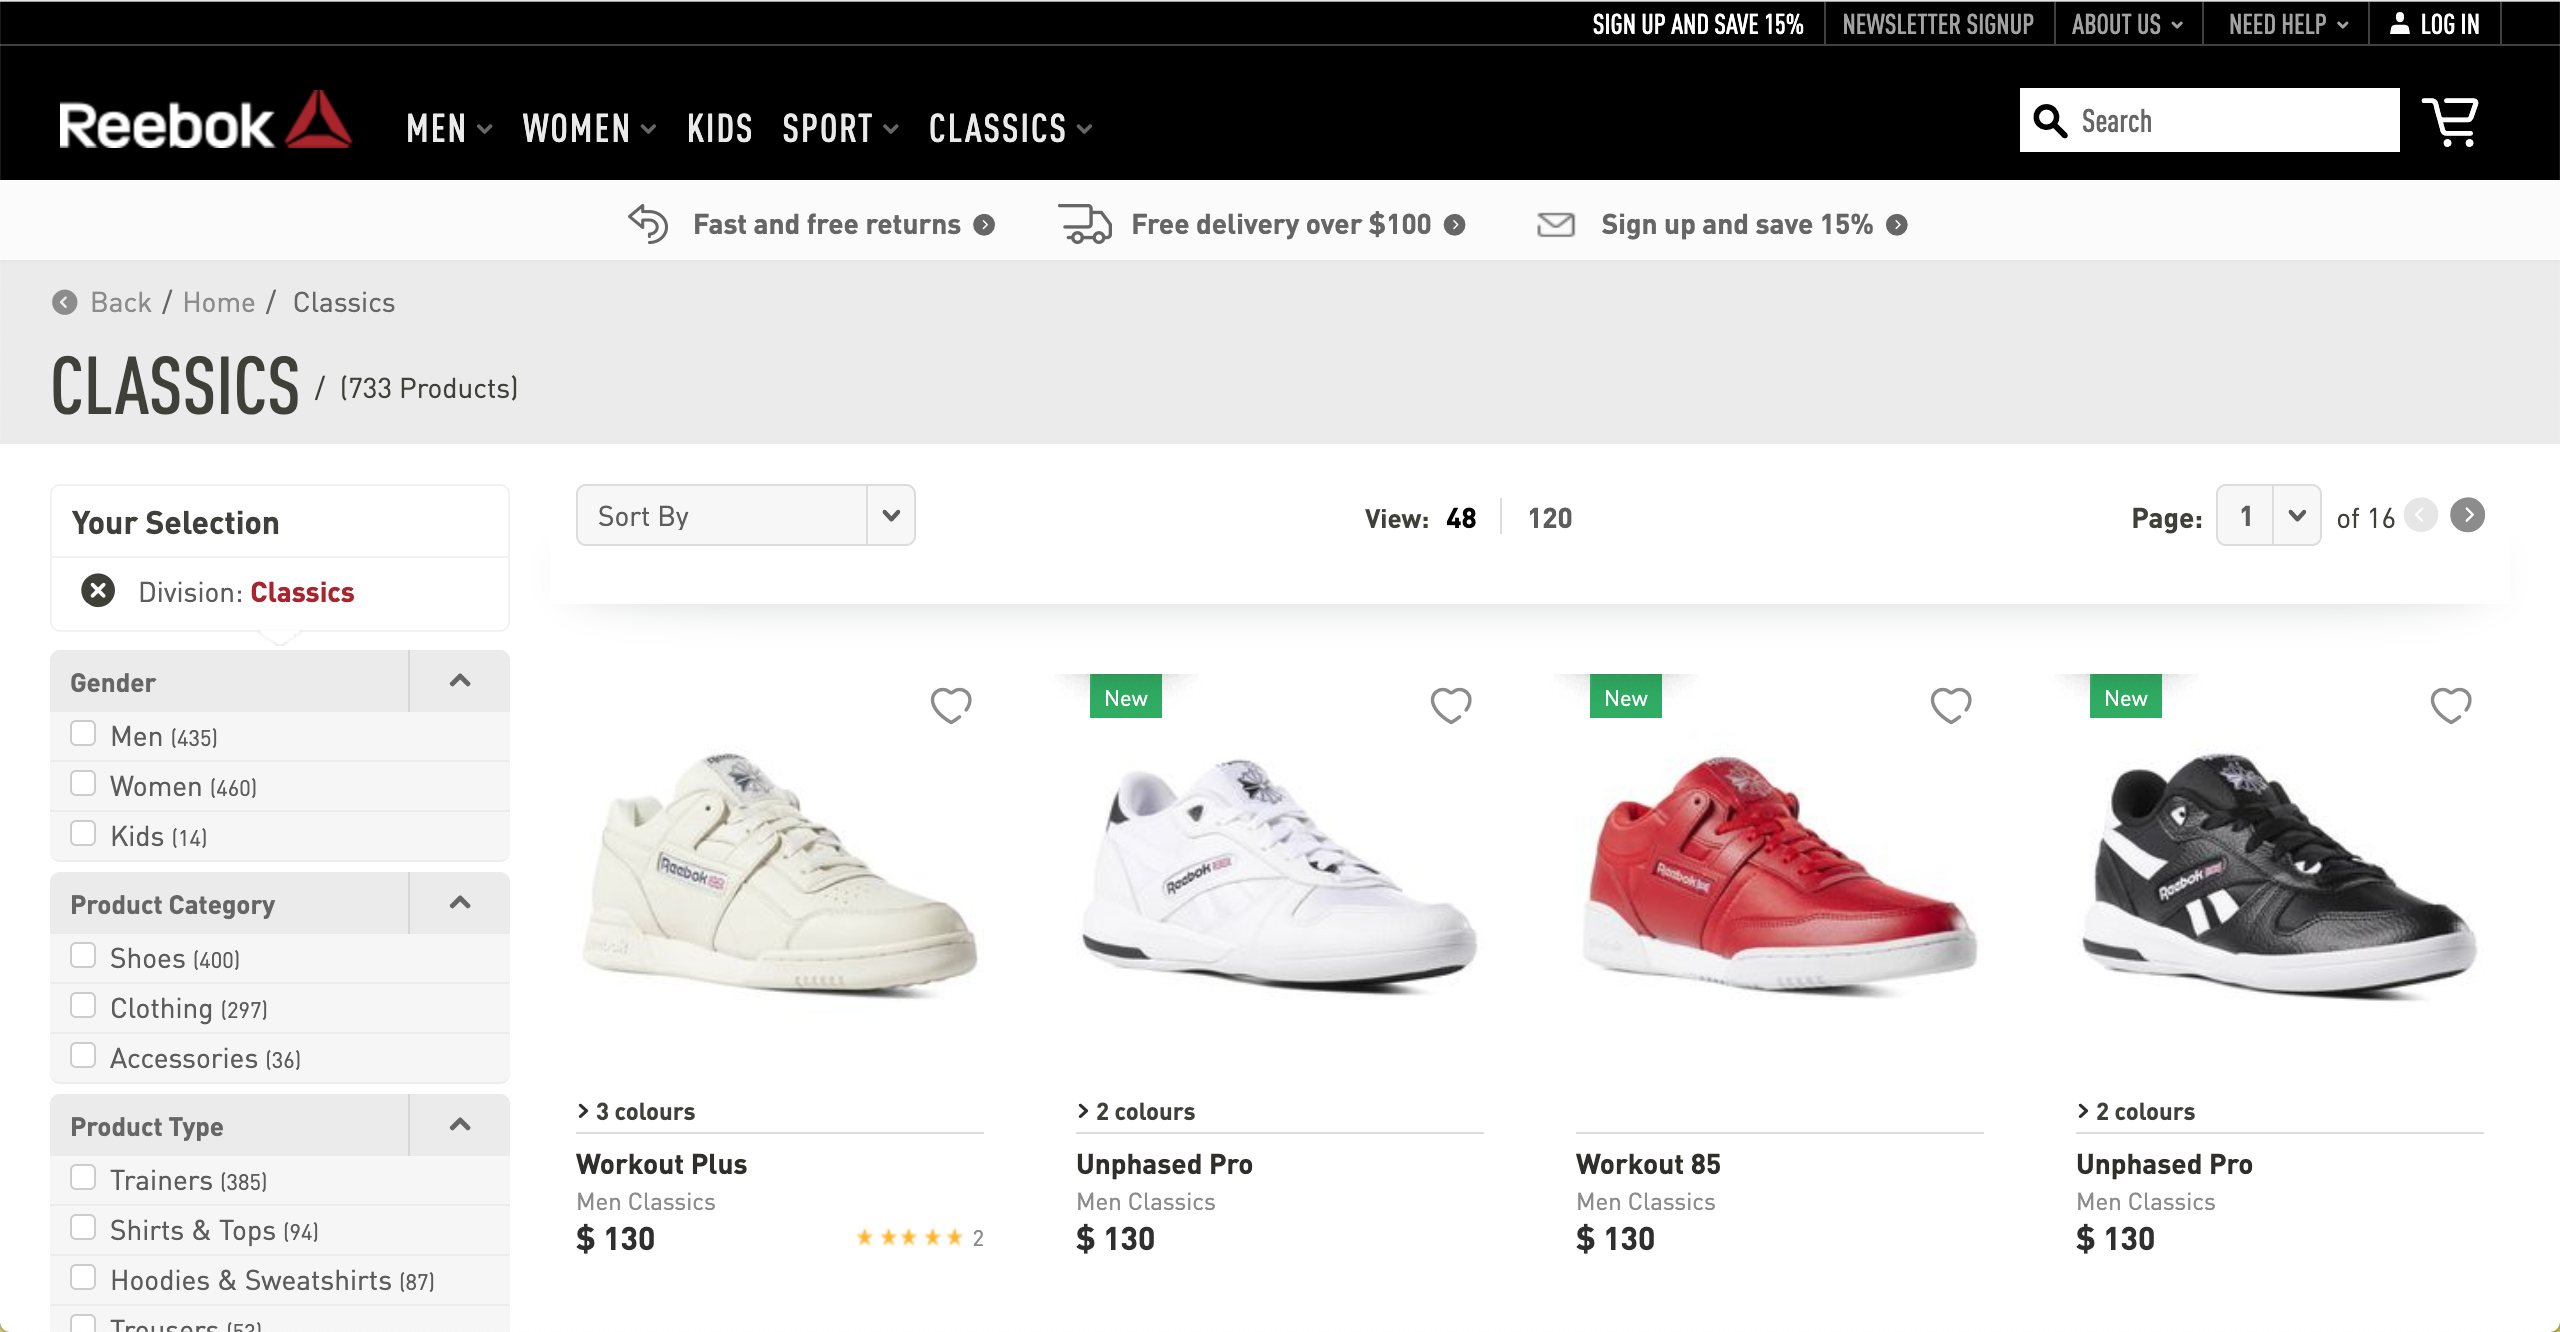 Reebok Classics product page